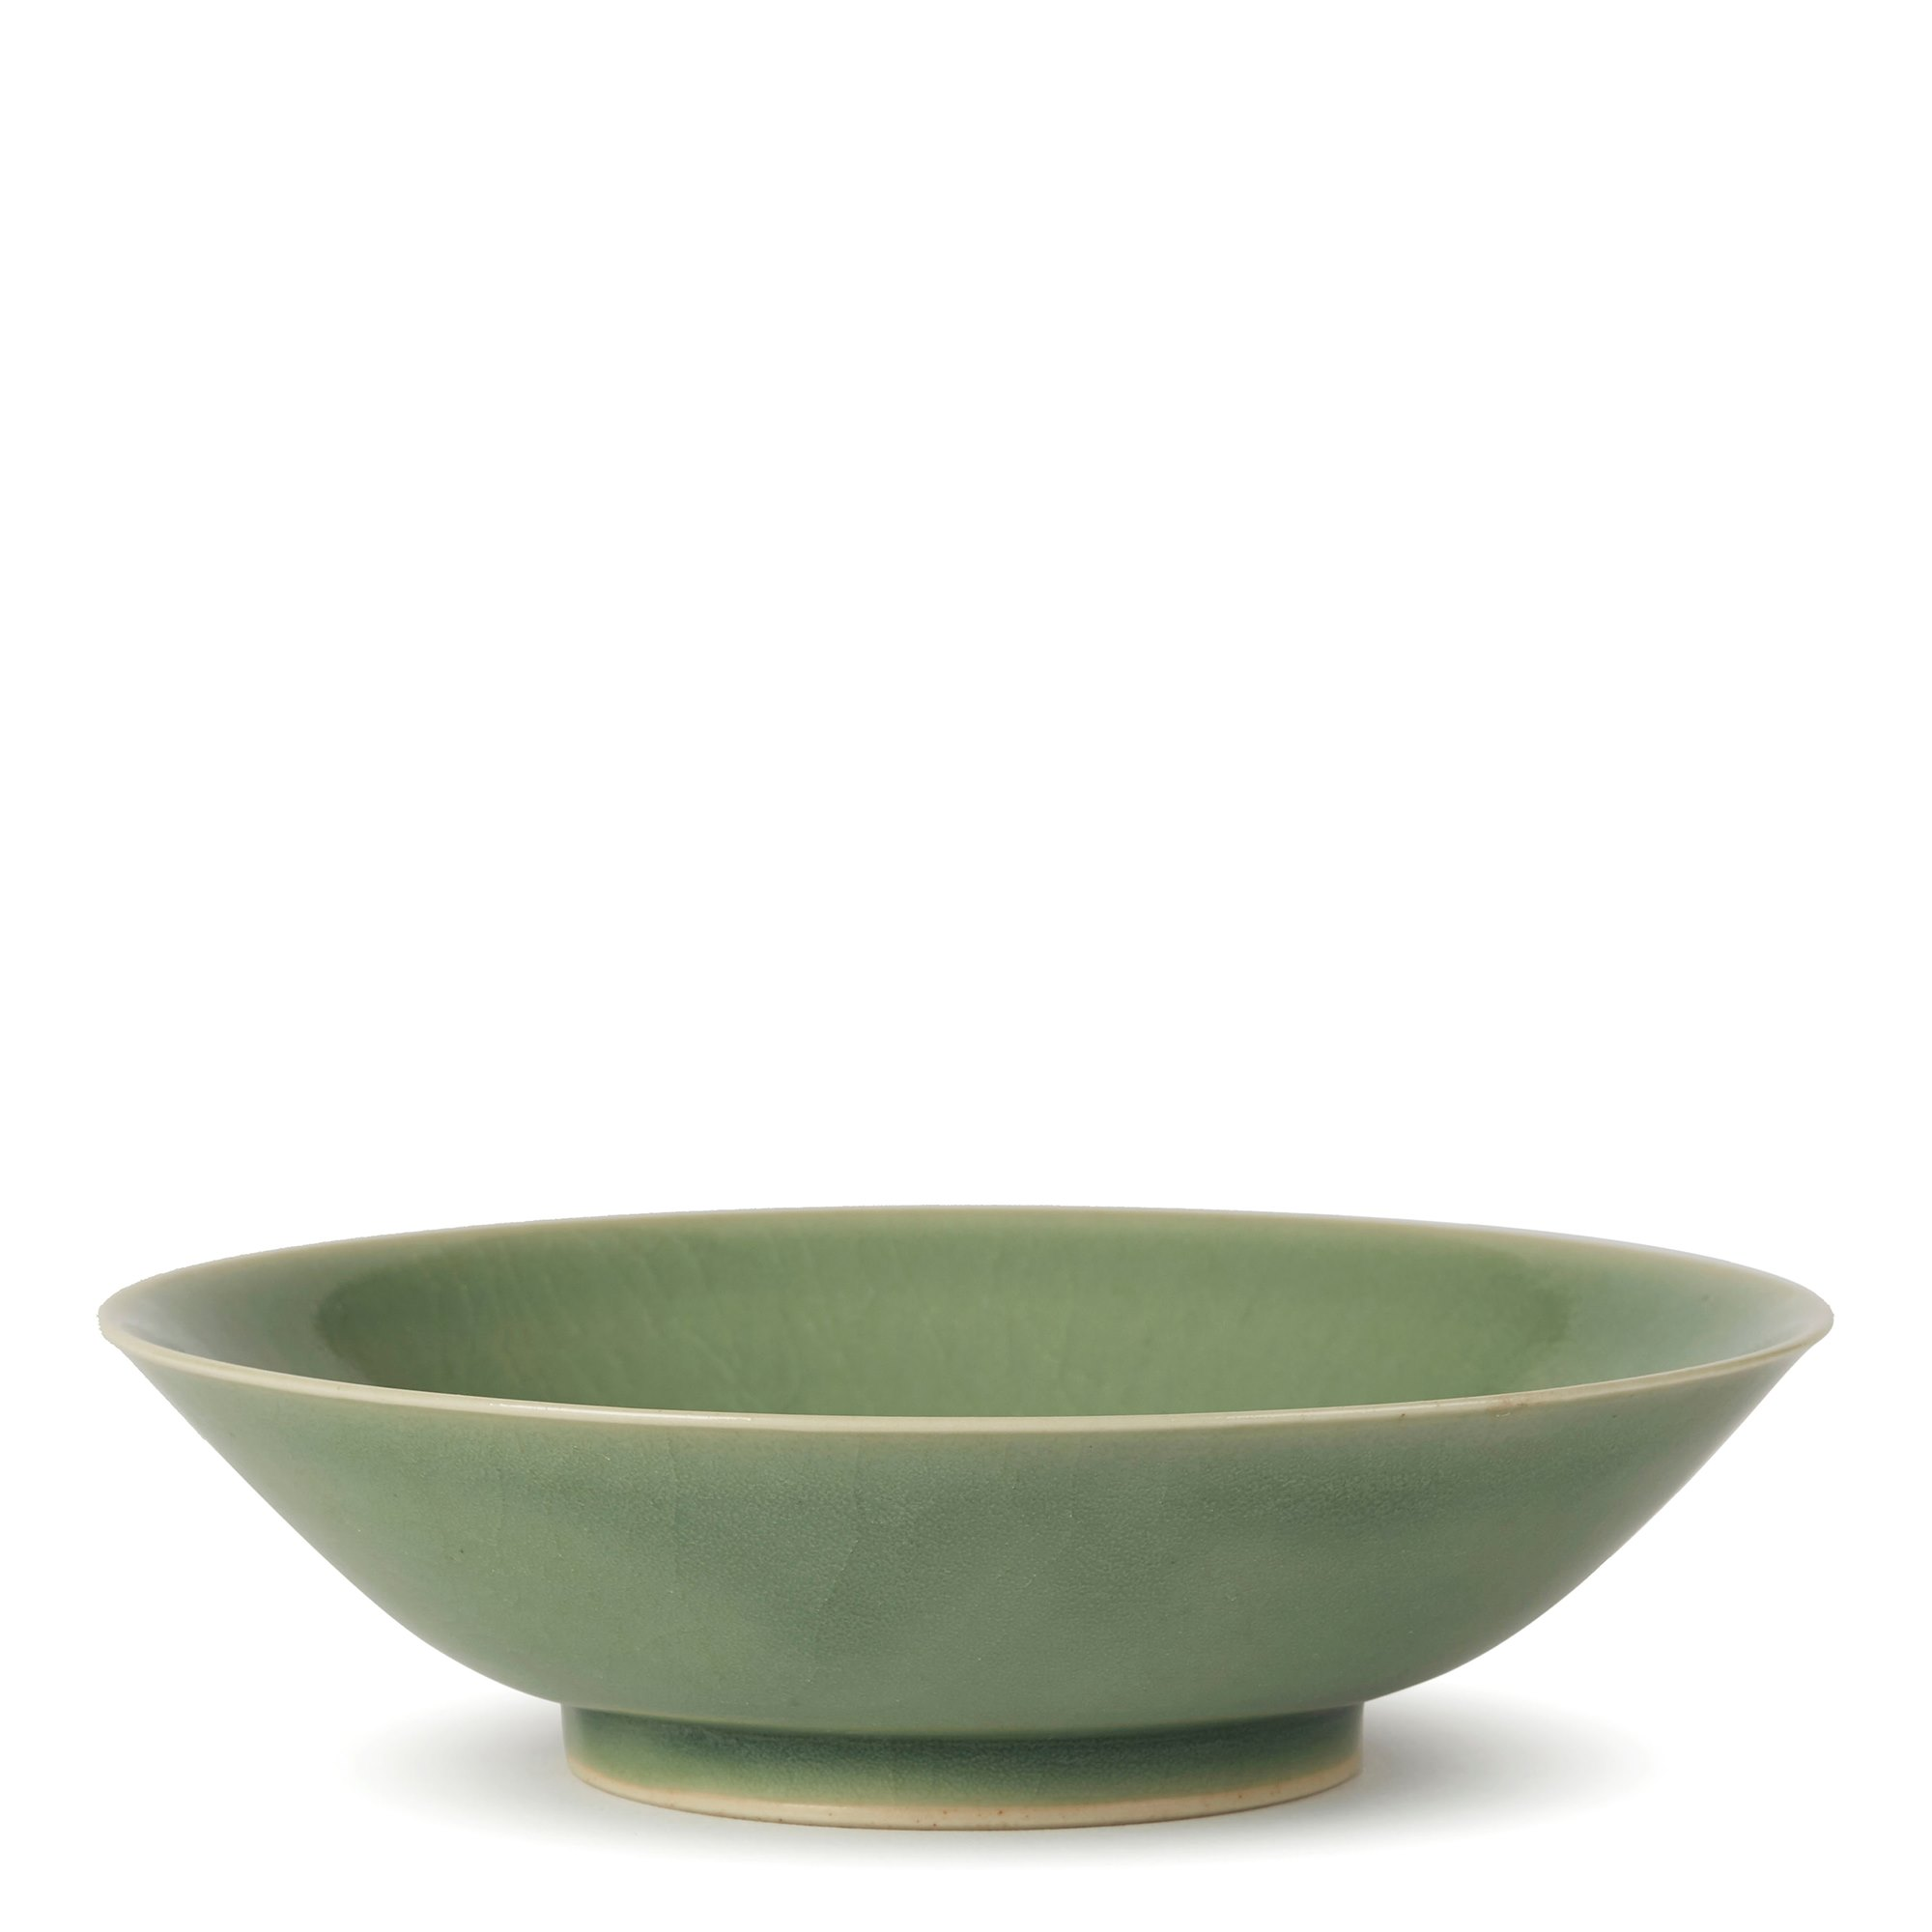 WILLIAM MEHORNAY STUDIO POTTERY GREEN CELADON DISH 1980 Made in 1980